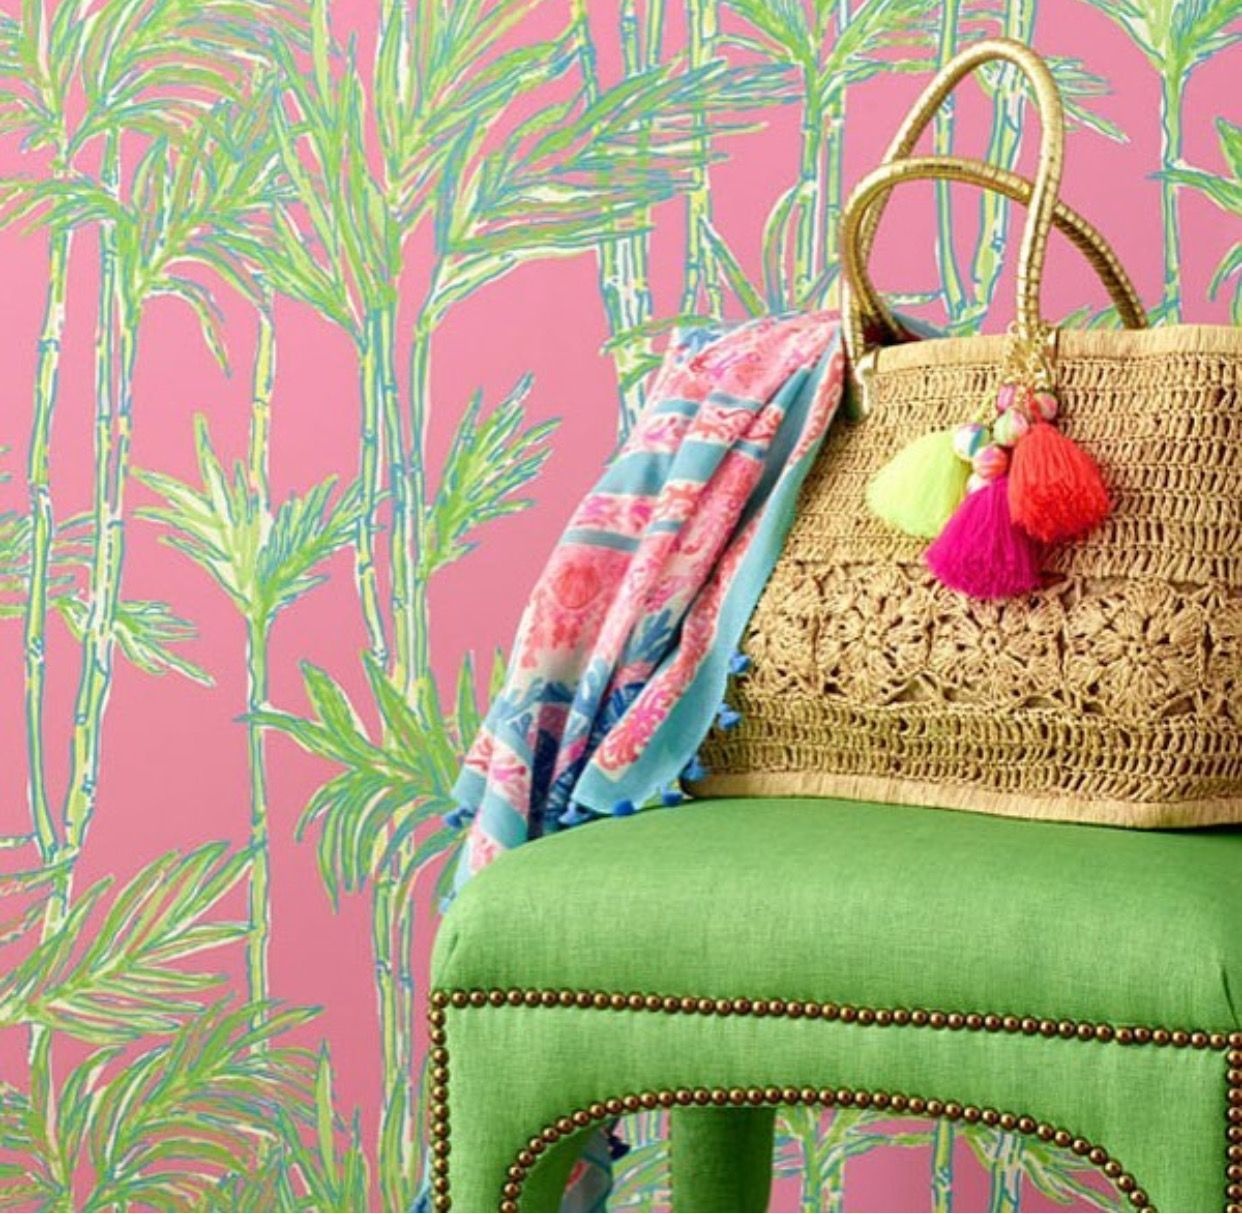 Pin by Island Home Decor on Wallpaper Fabric wallpaper